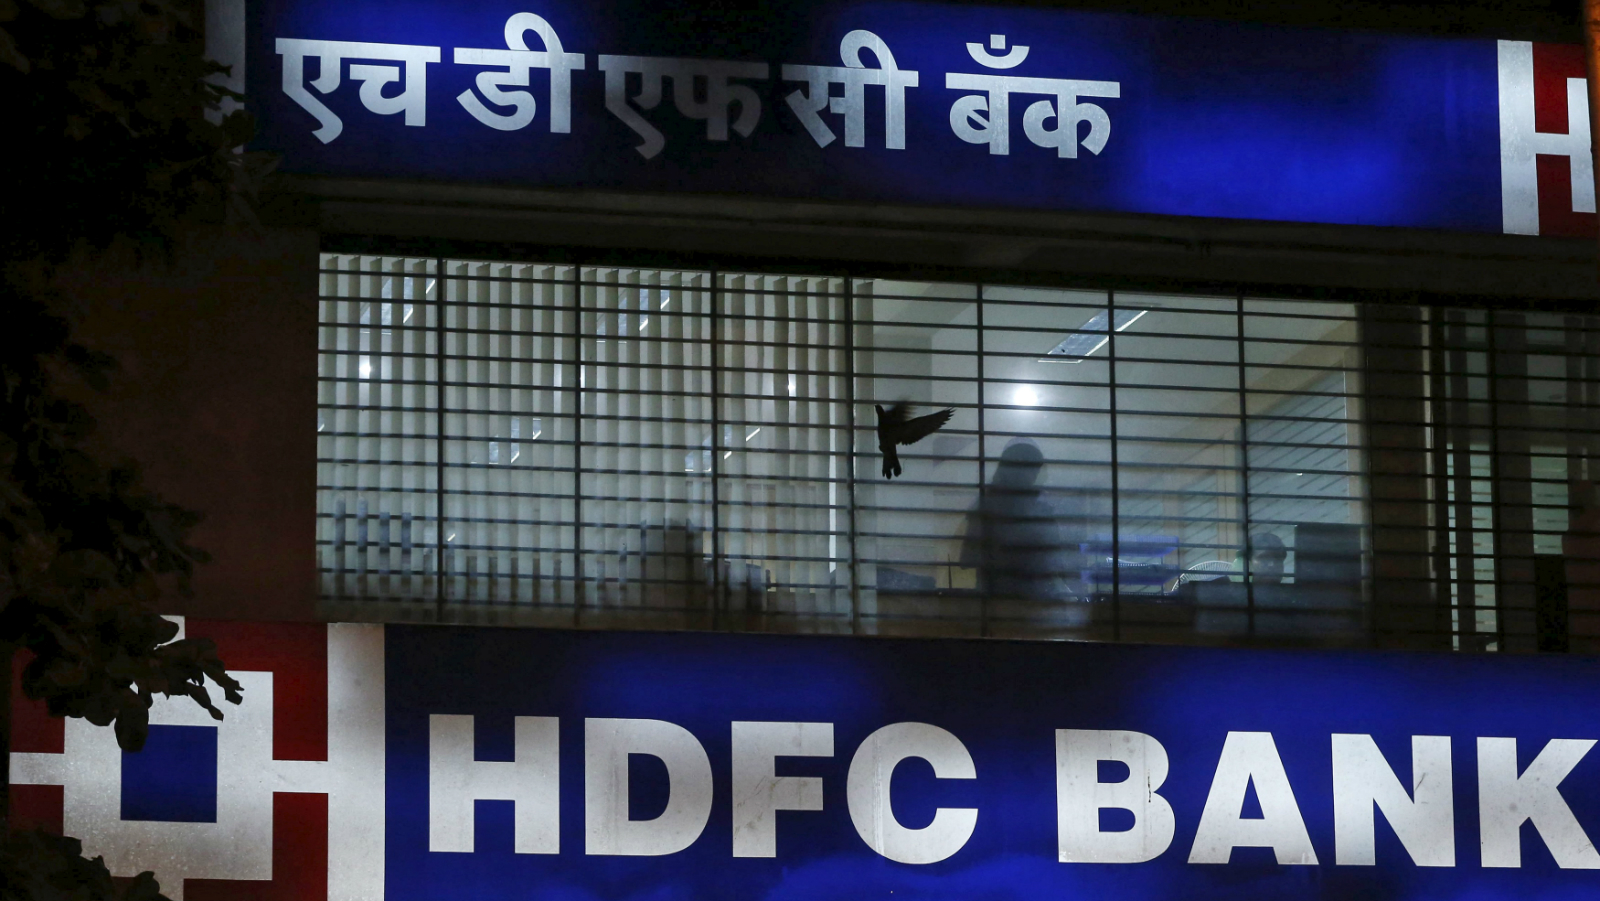 A bird flies past a window of a HDFC Bank branch office in Mumbai, India, October 21, 2015. HDFC Bank Ltd, India's second-largest private sector lender by assets, grew loans faster than expected in the second quarter as more people borrowed to buy cars and homes, making up for a slower pickup in big-ticket corporate credit.